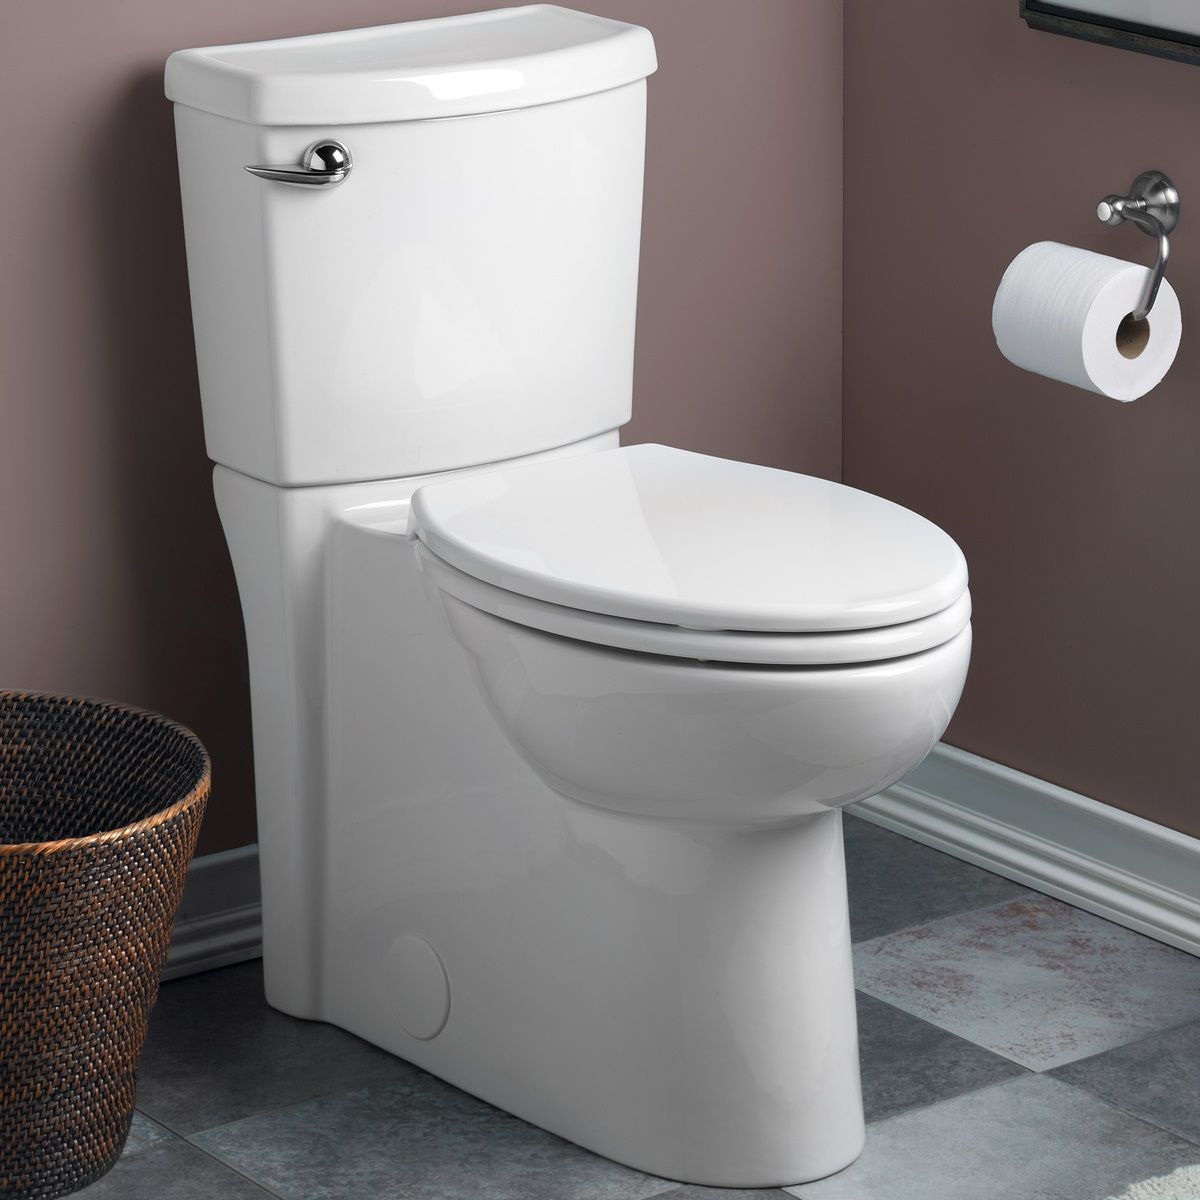 Toilets Cadet 3 Flowise Right Height Elongated Toilet 1 28gpf White With Images Small Shower Remodel Shower Remodel American Standard